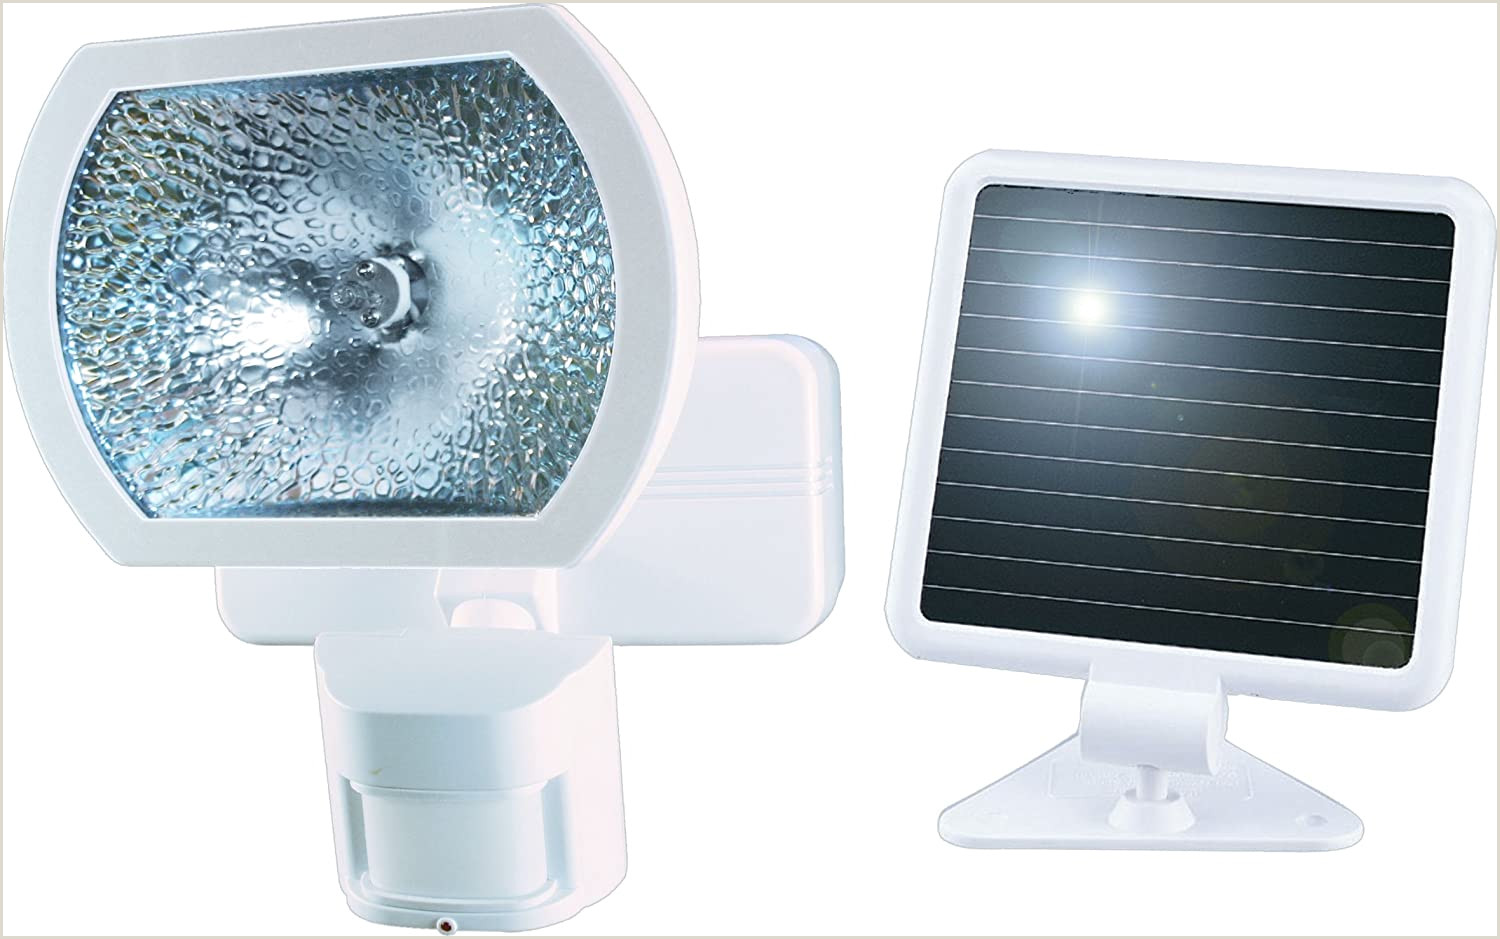 Best Business Cards For Solar Heath Zenith Sl 7001 Wh C Solar Powered 180 Degree Motion Activated Halogen Security Light White